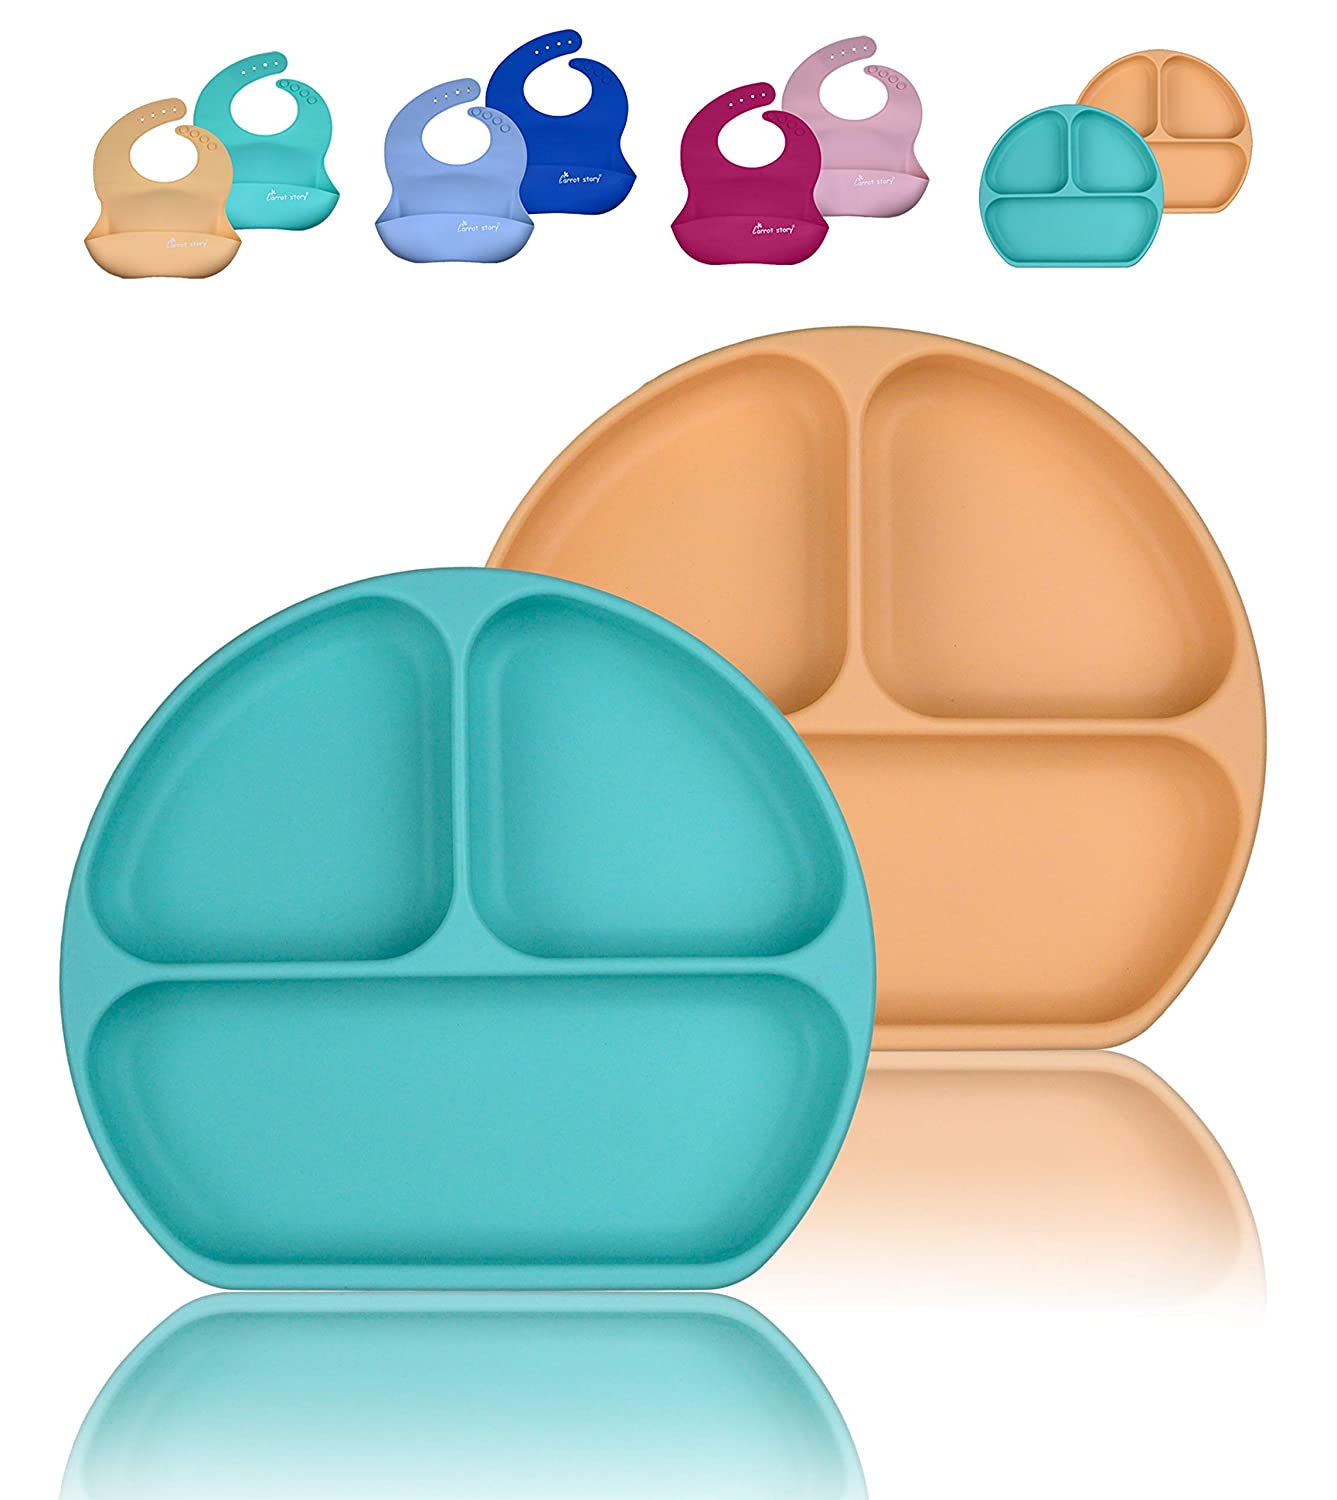 CARROT STORY 100% Silicone Suction Baby Toddler Plate, 2-Pack, Waterproof Washable Plate, BPA Free, Microwave/Dishwasher Safe (Macaron Set, Peach/Baby Blue)